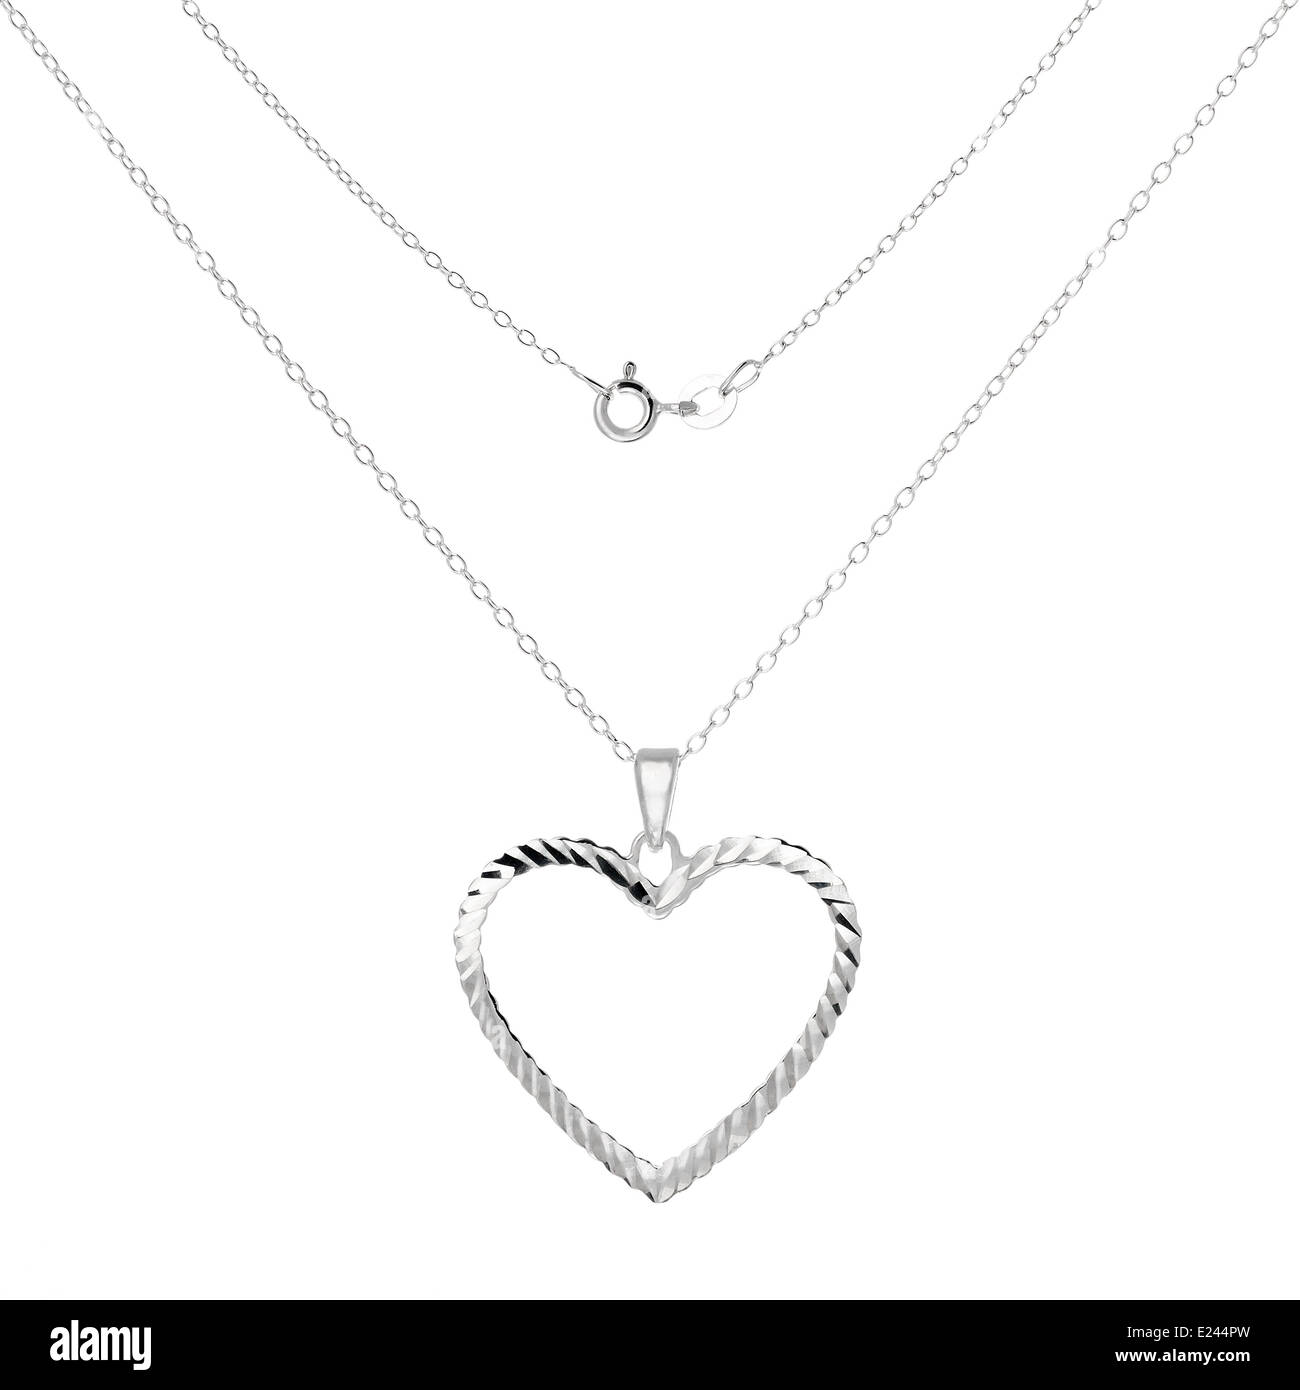 Silver necklace and pendant in the shape of heart Stock Photo